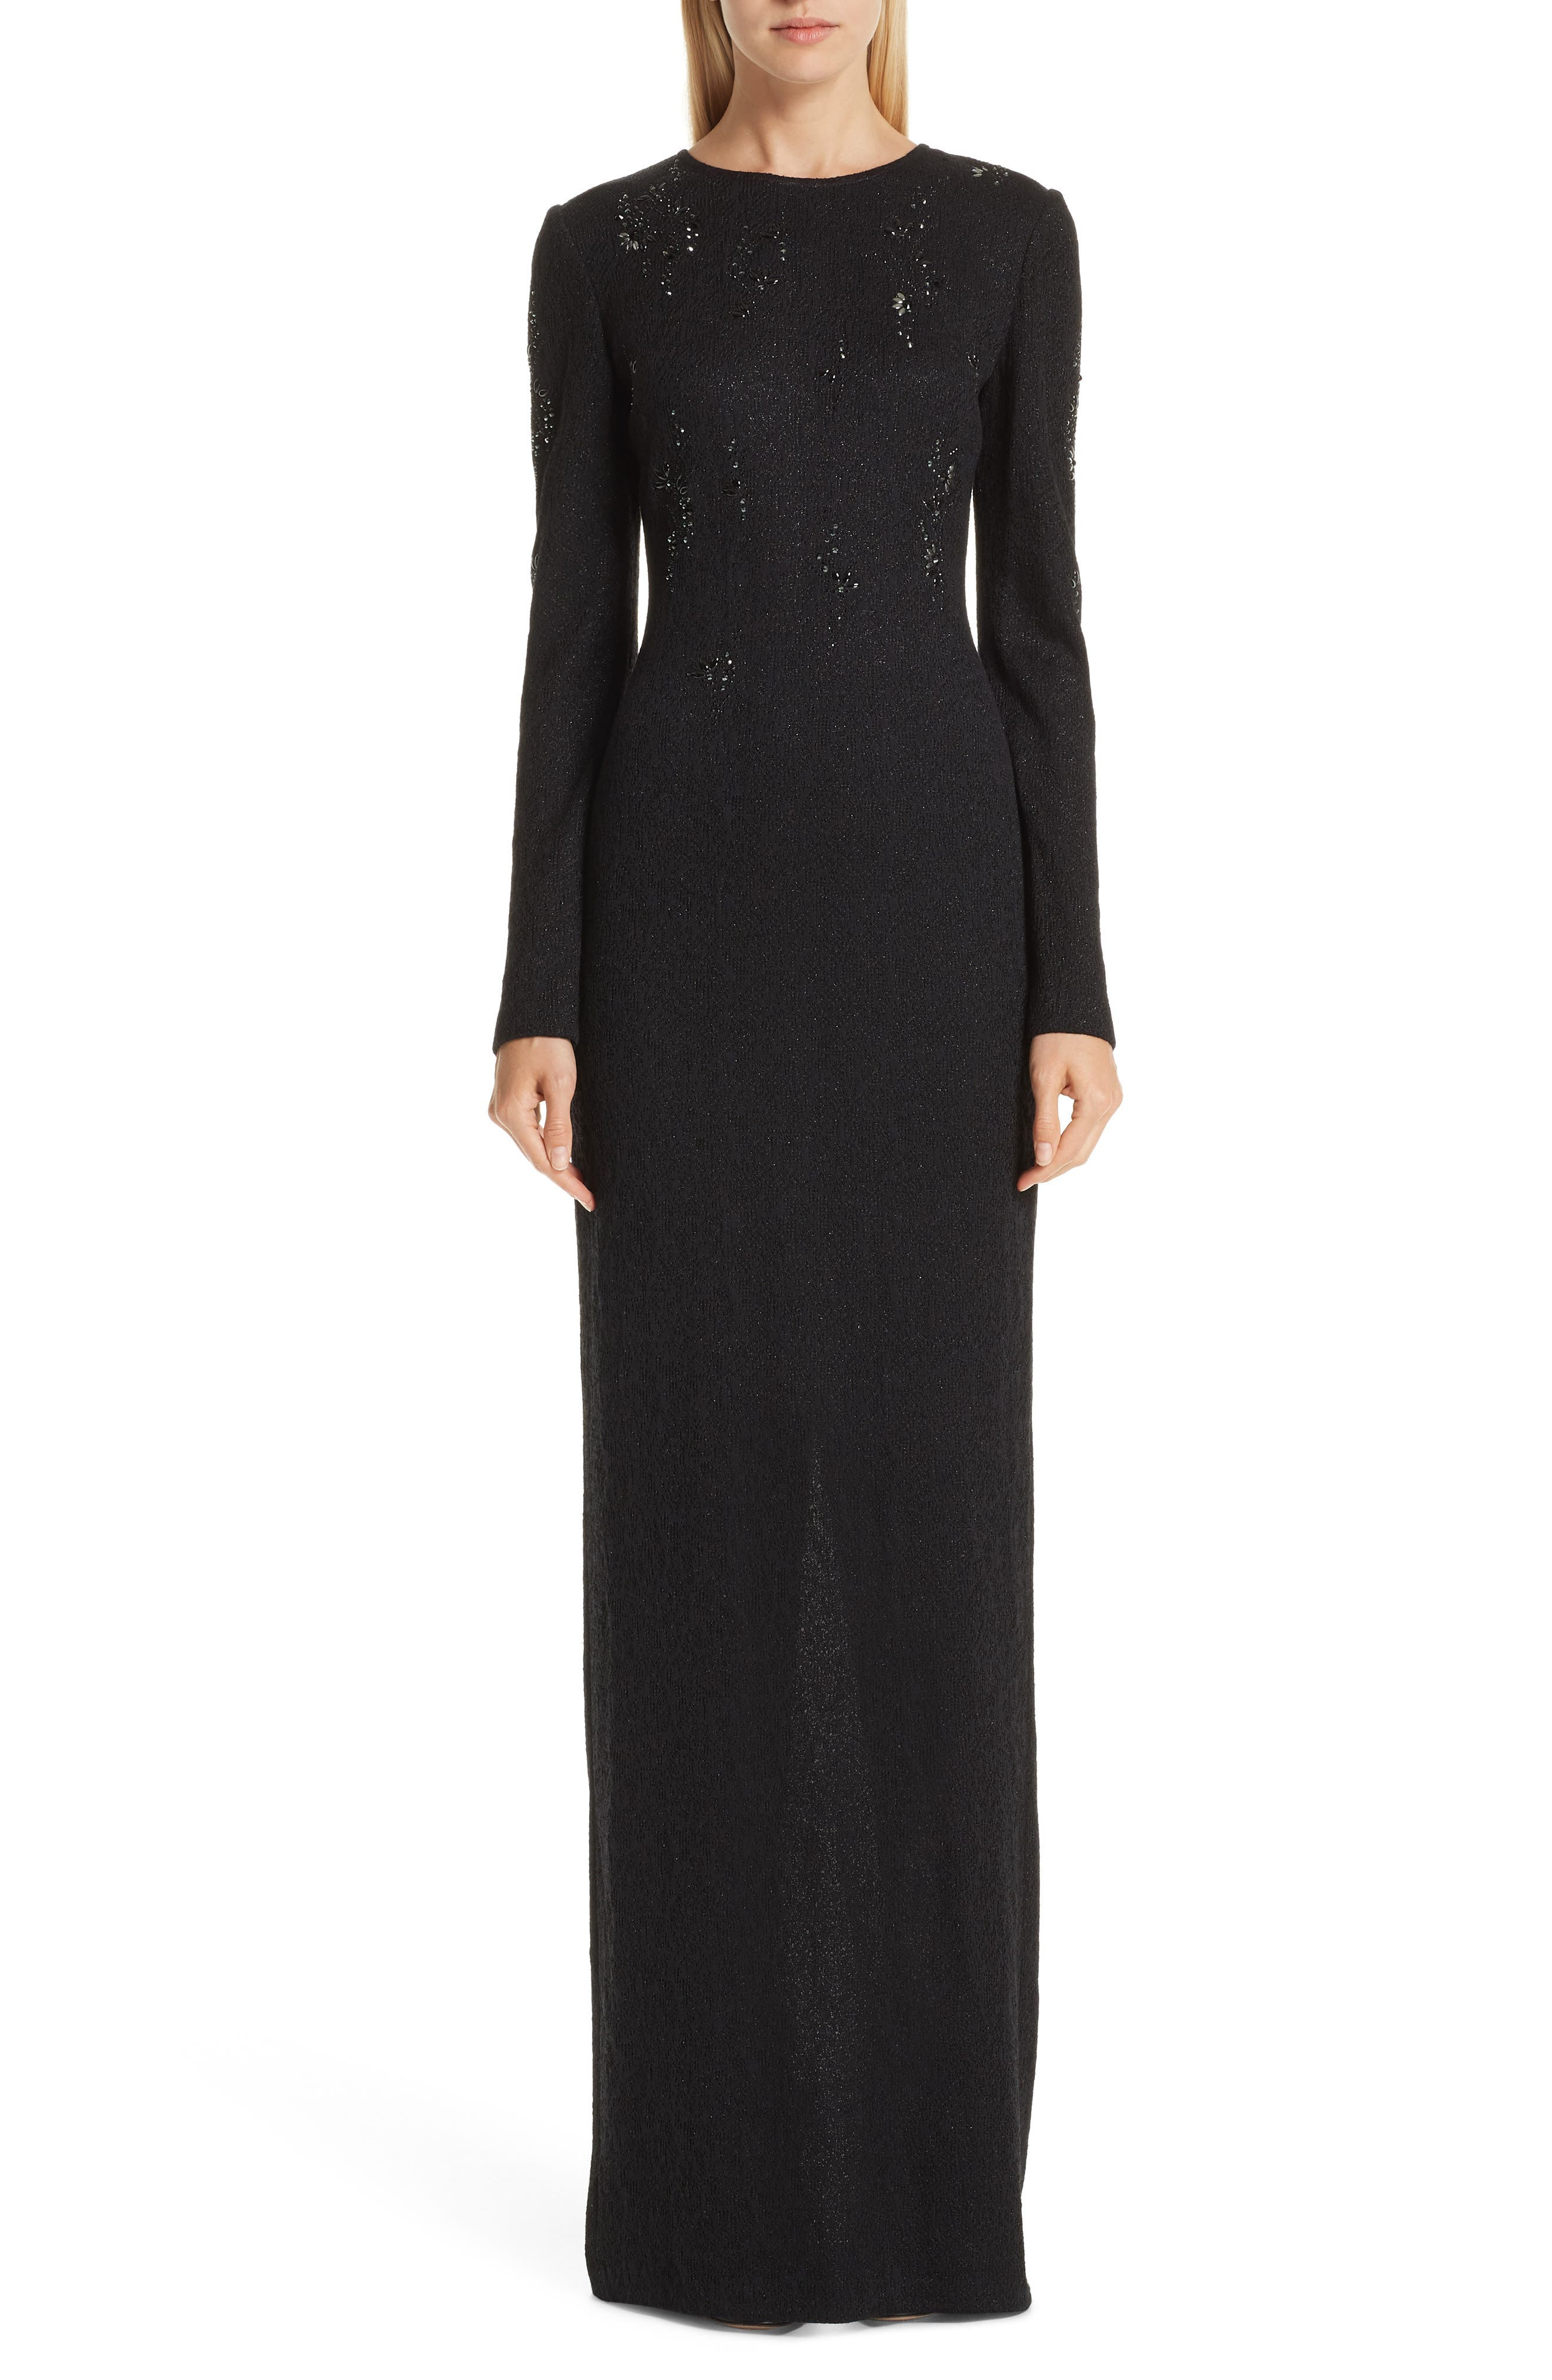 ST. JOHN COLLECTION, Lace Overlay Jacquard Knit Gown, Main thumbnail 1, color, CAVIAR